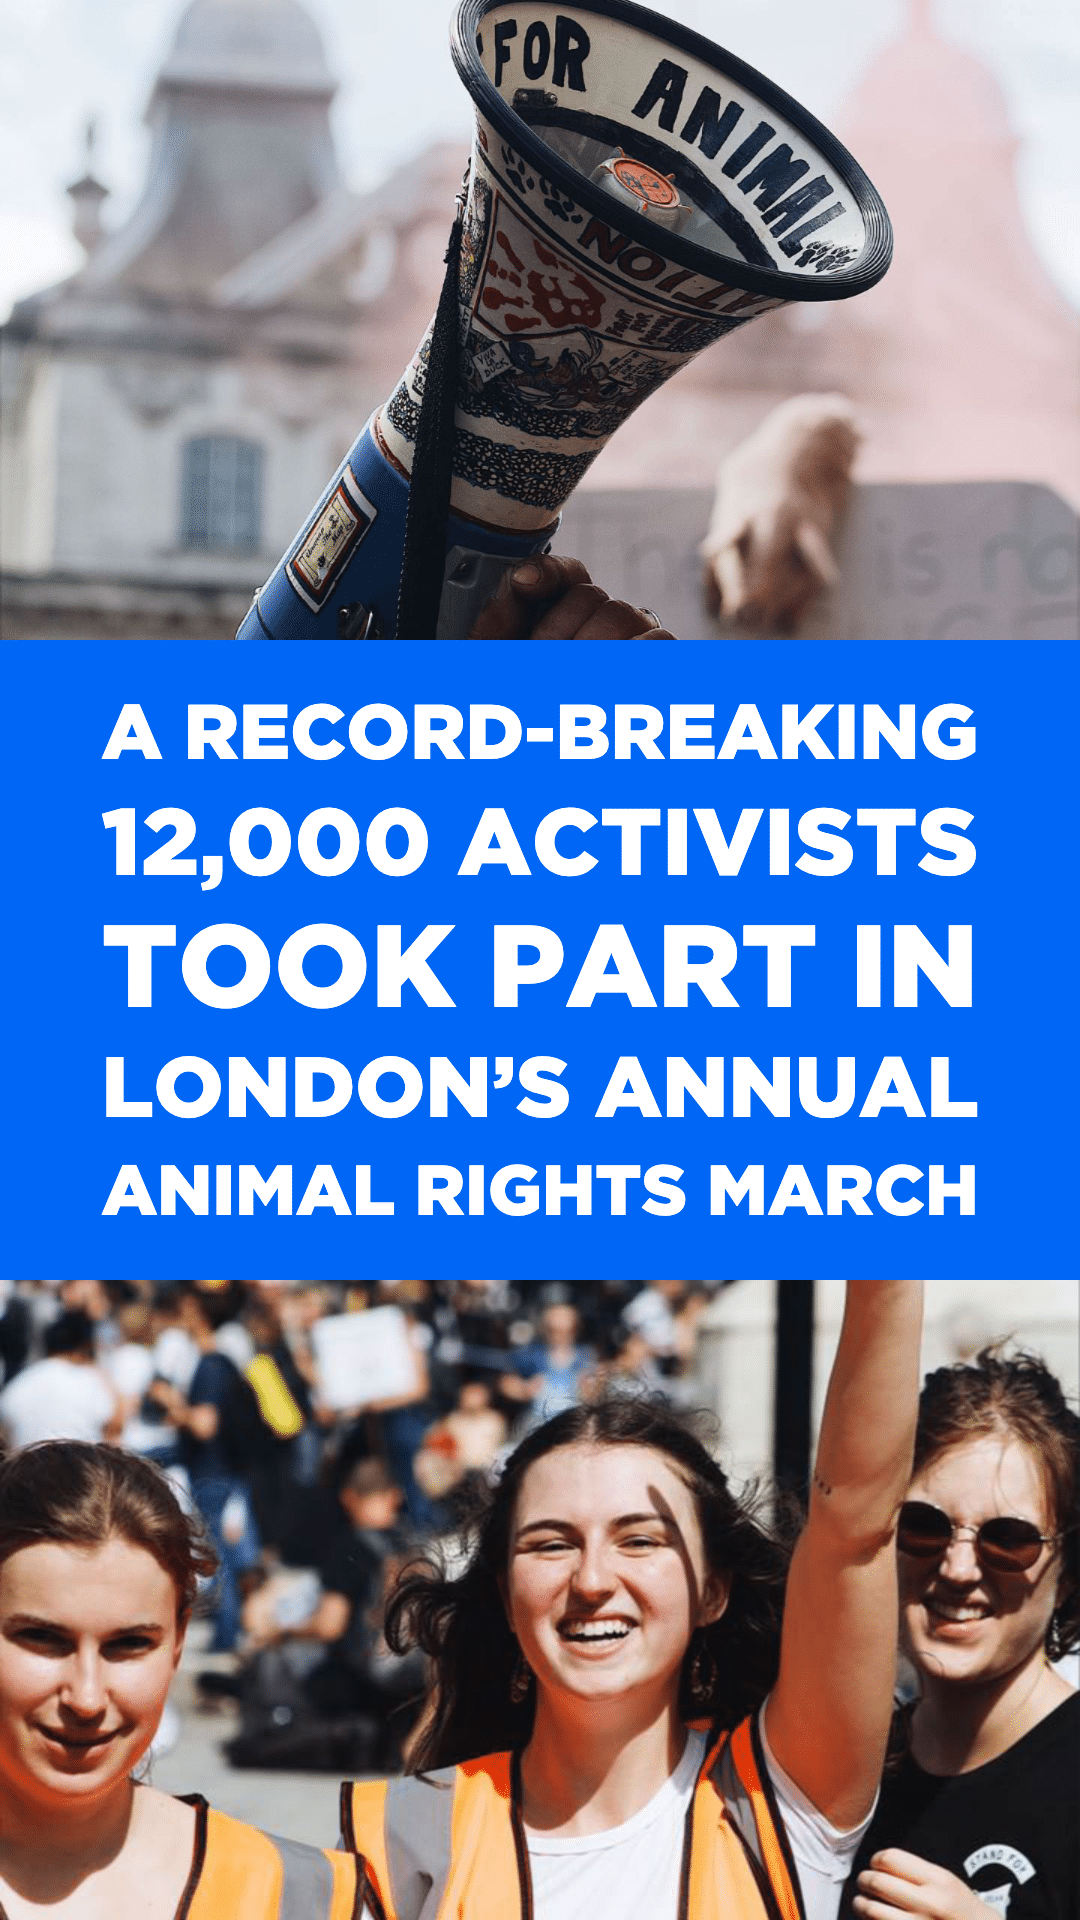 A Record-Breaking 12,000 Activists Took Part in London's Annual Animal Rights March